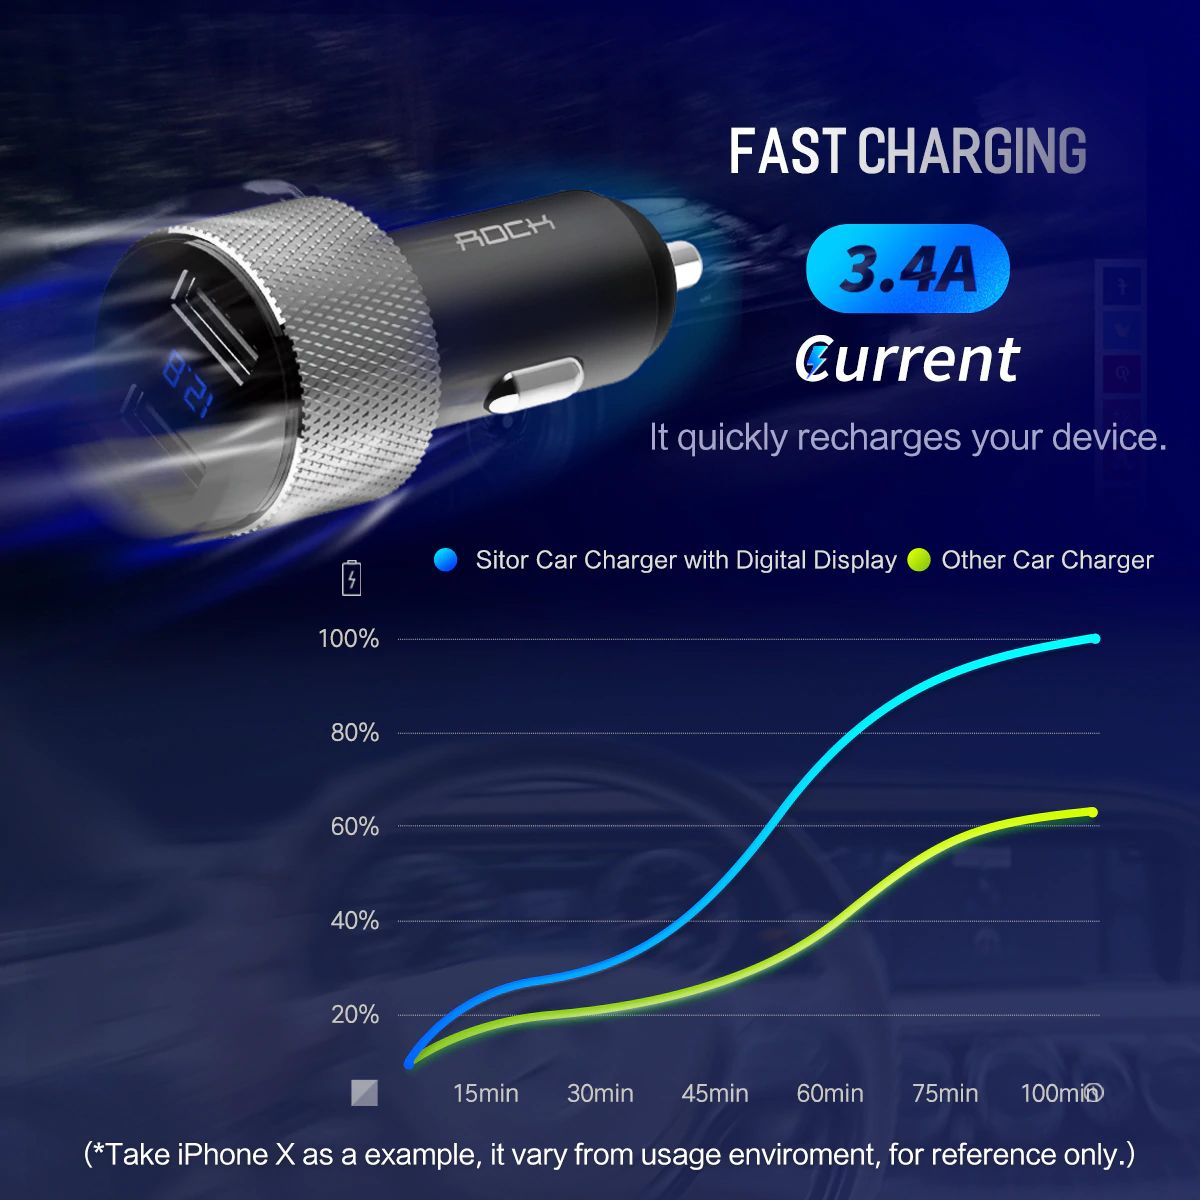 Rock Sitor Car Charger With Digital Display (17)